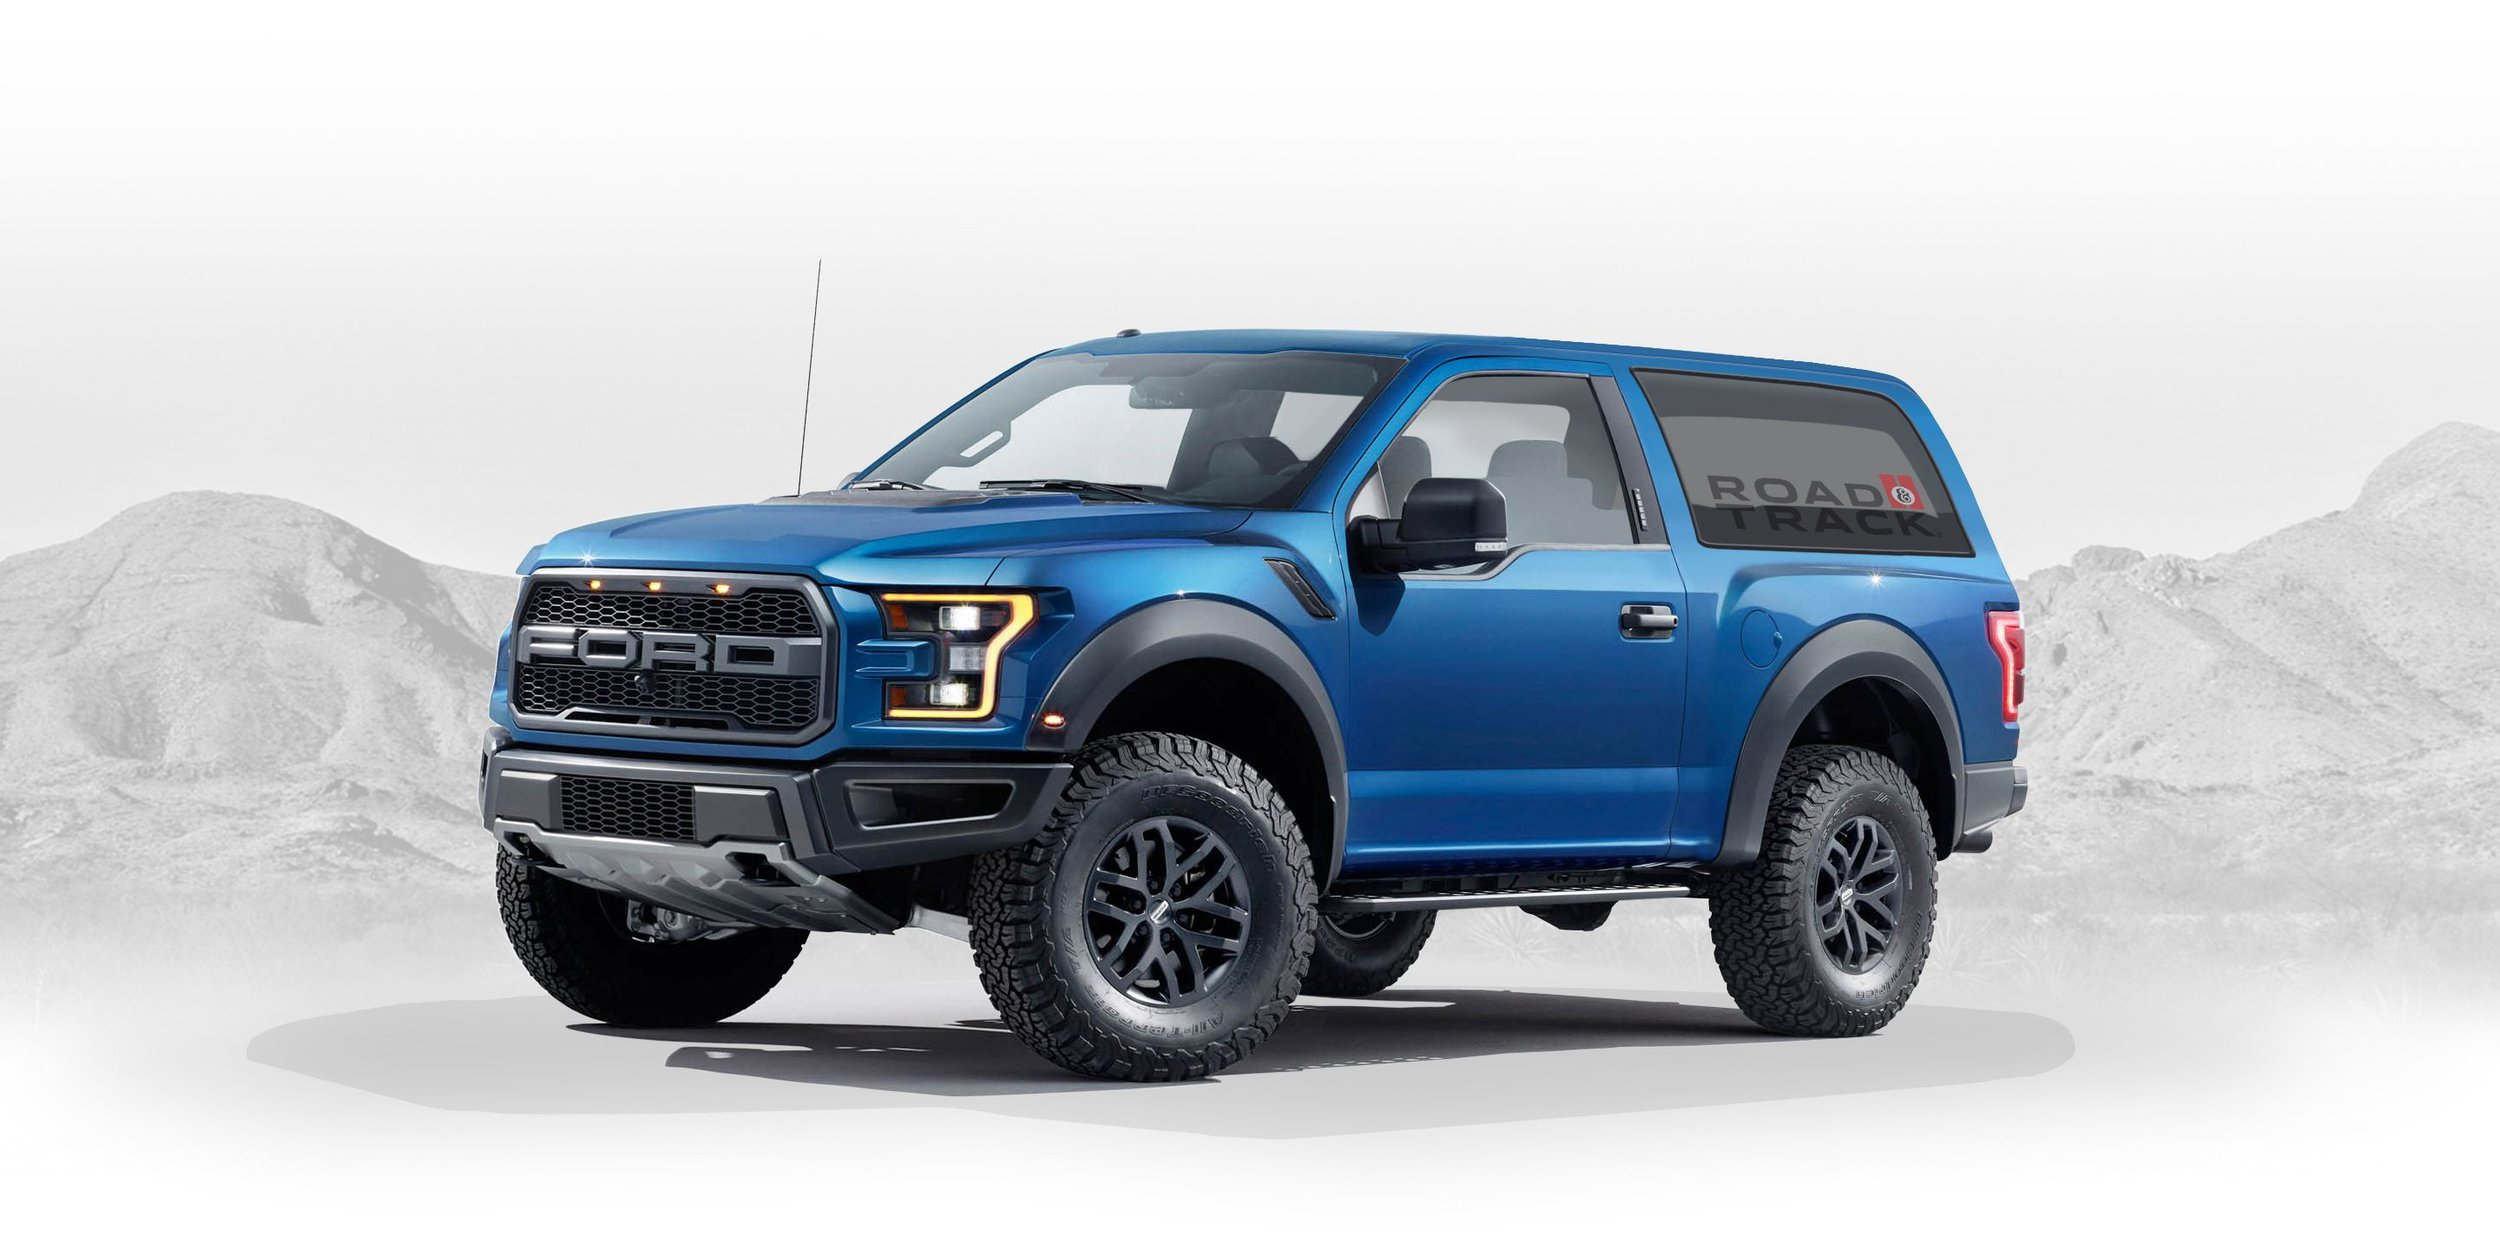 1464285572-2020-fordsvt-bronco-2dr-blue.jpeg